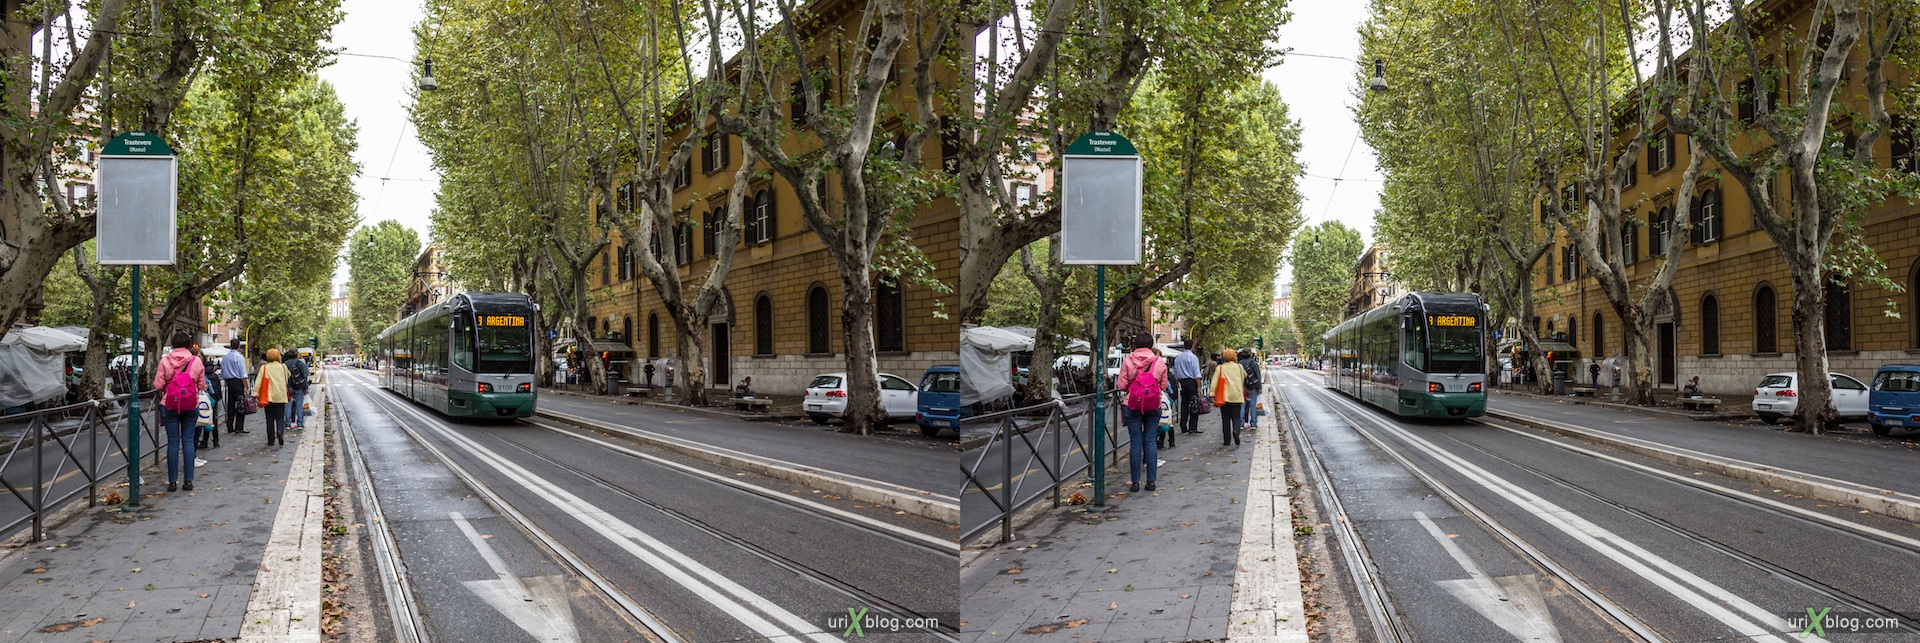 2012, tram, tram stop, Viale di Trastevere avenue, Rome, Italy, Europe, 3D, stereo pair, cross-eyed, crossview, cross view stereo pair